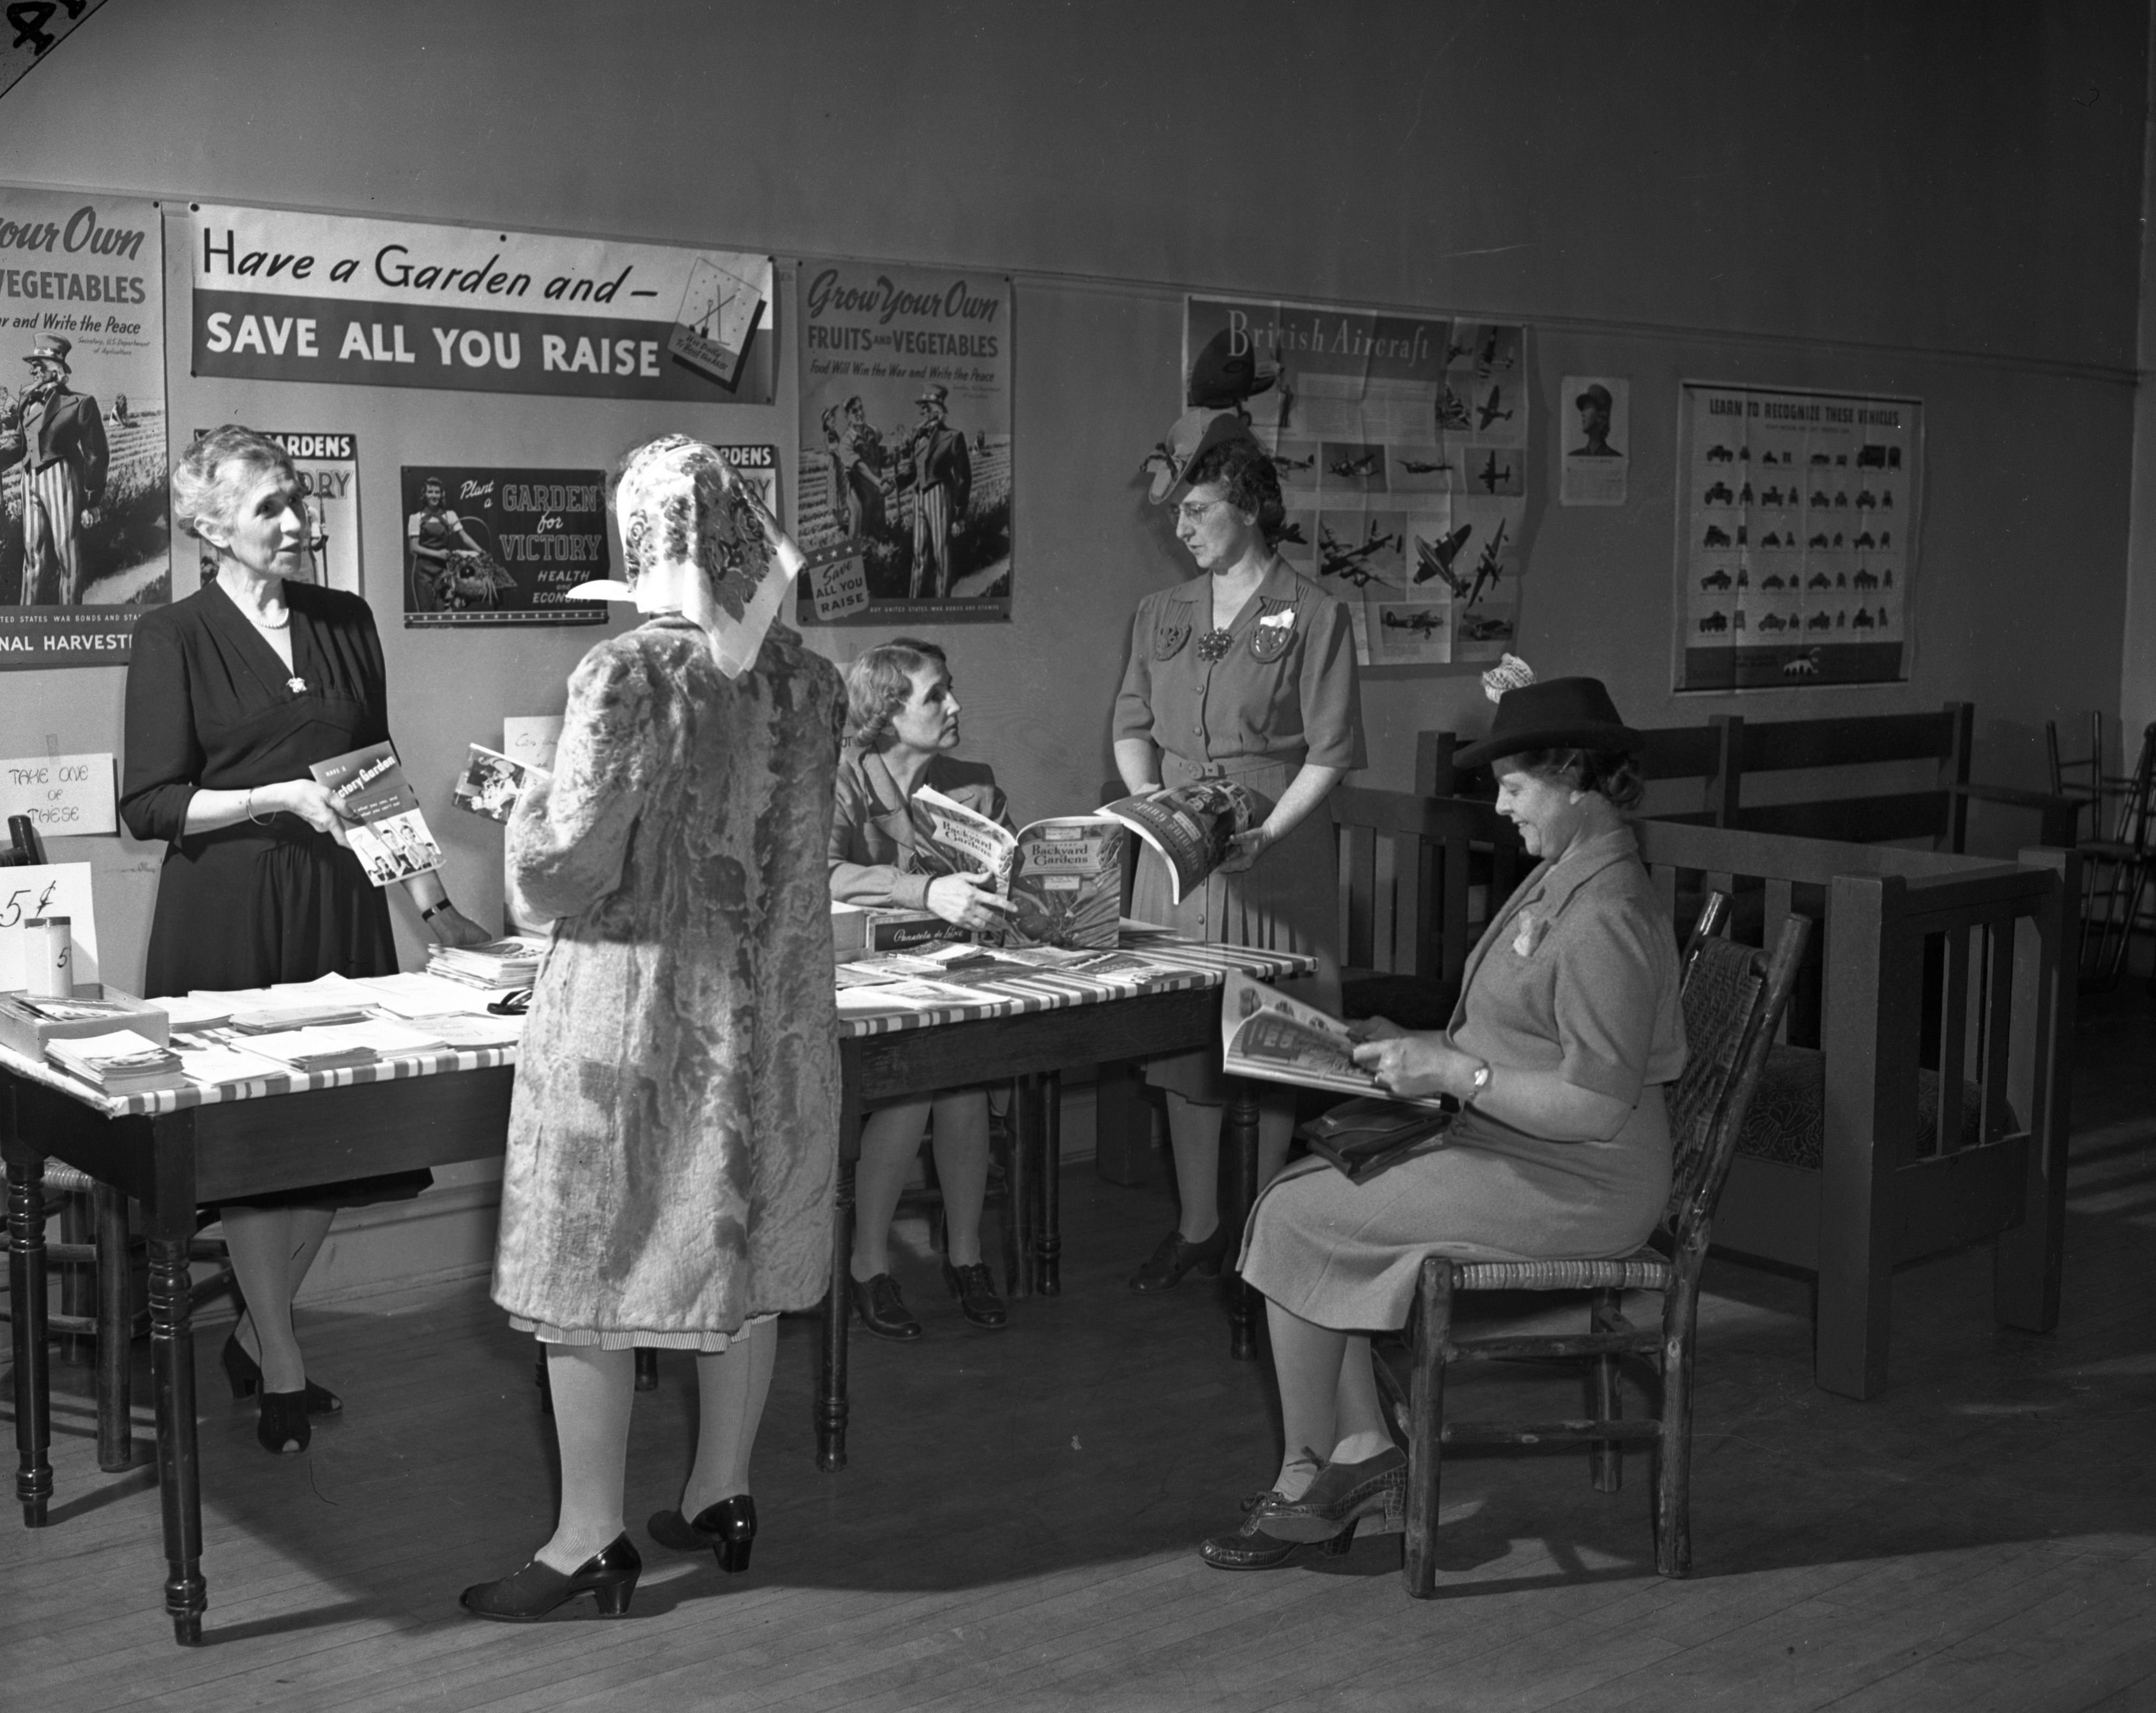 CDVO: Victory Garden Reading Room, April 1943 image